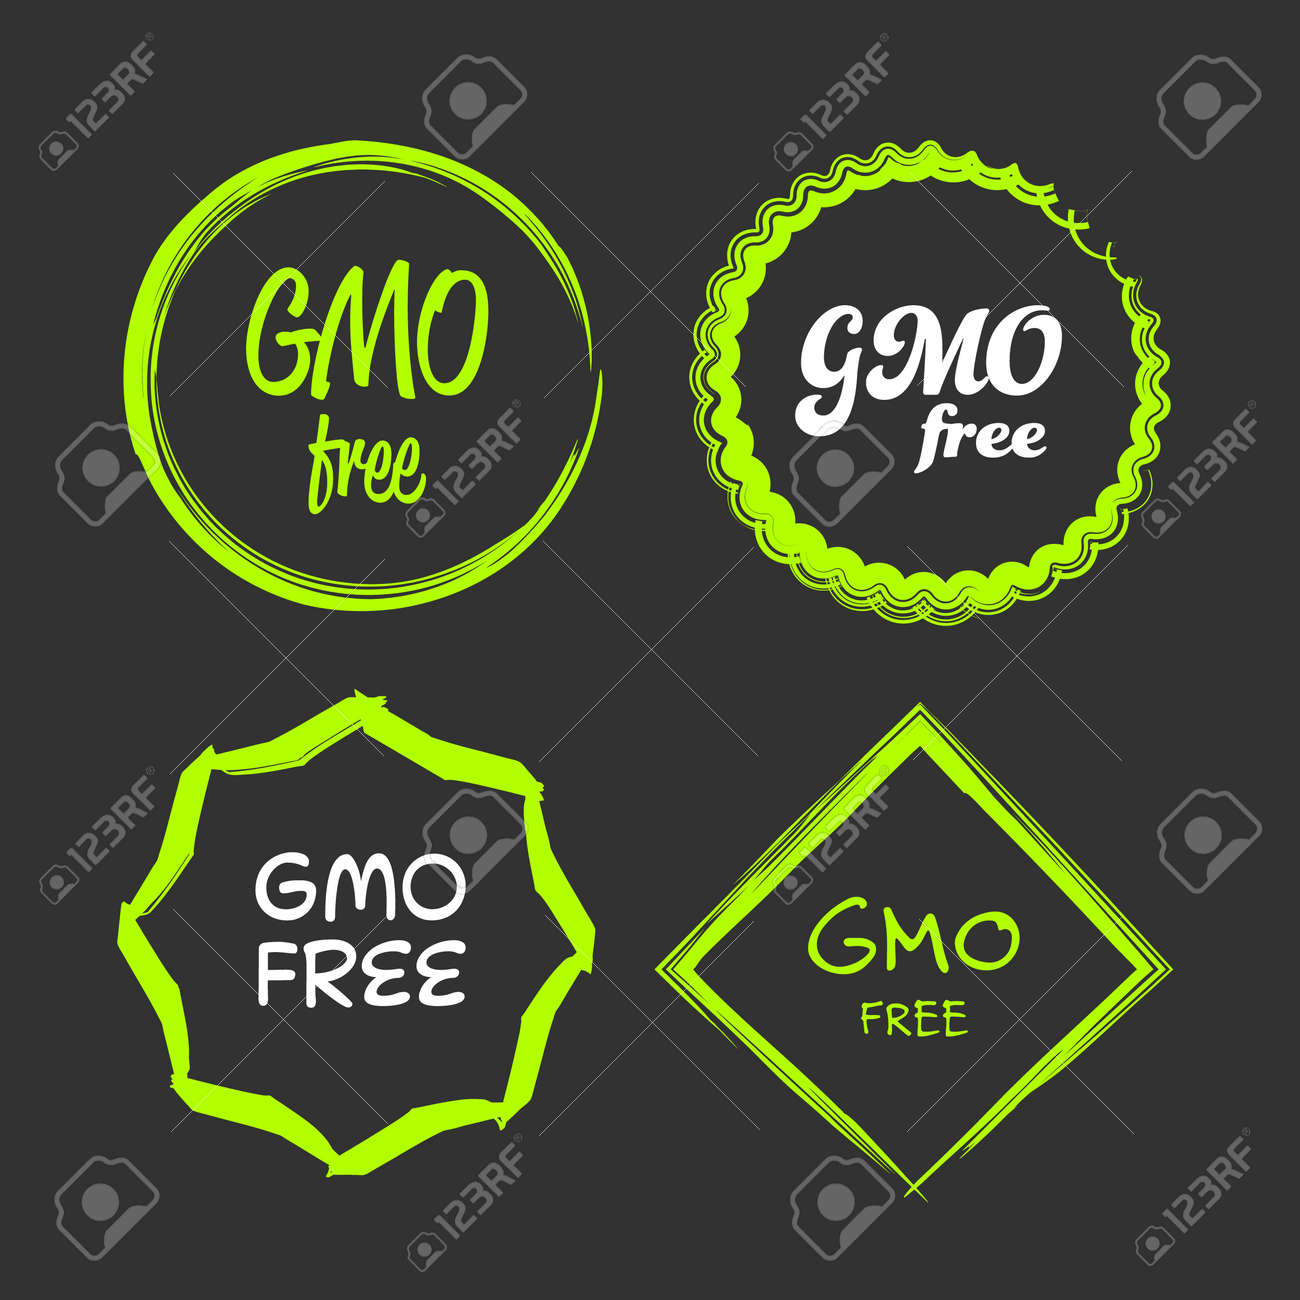 gmo free green and white vector sign logo symbol stock vector - 77838881